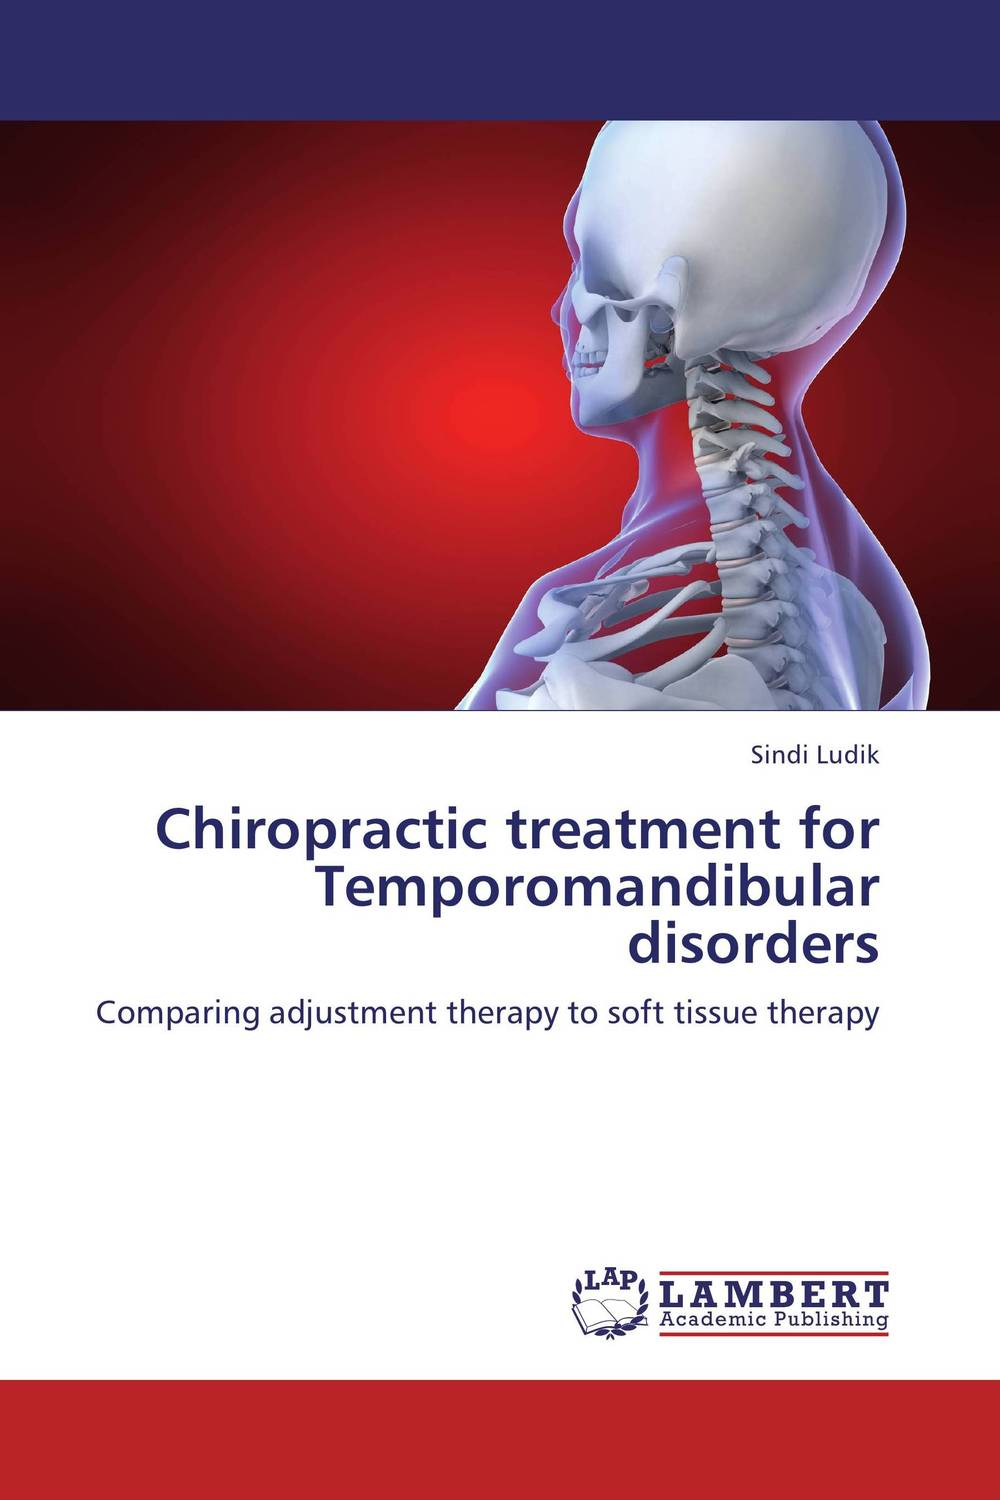 Chiropractic treatment for Temporomandibular disorders temporomandibular disorders and prosthetic replacement of missing teeth